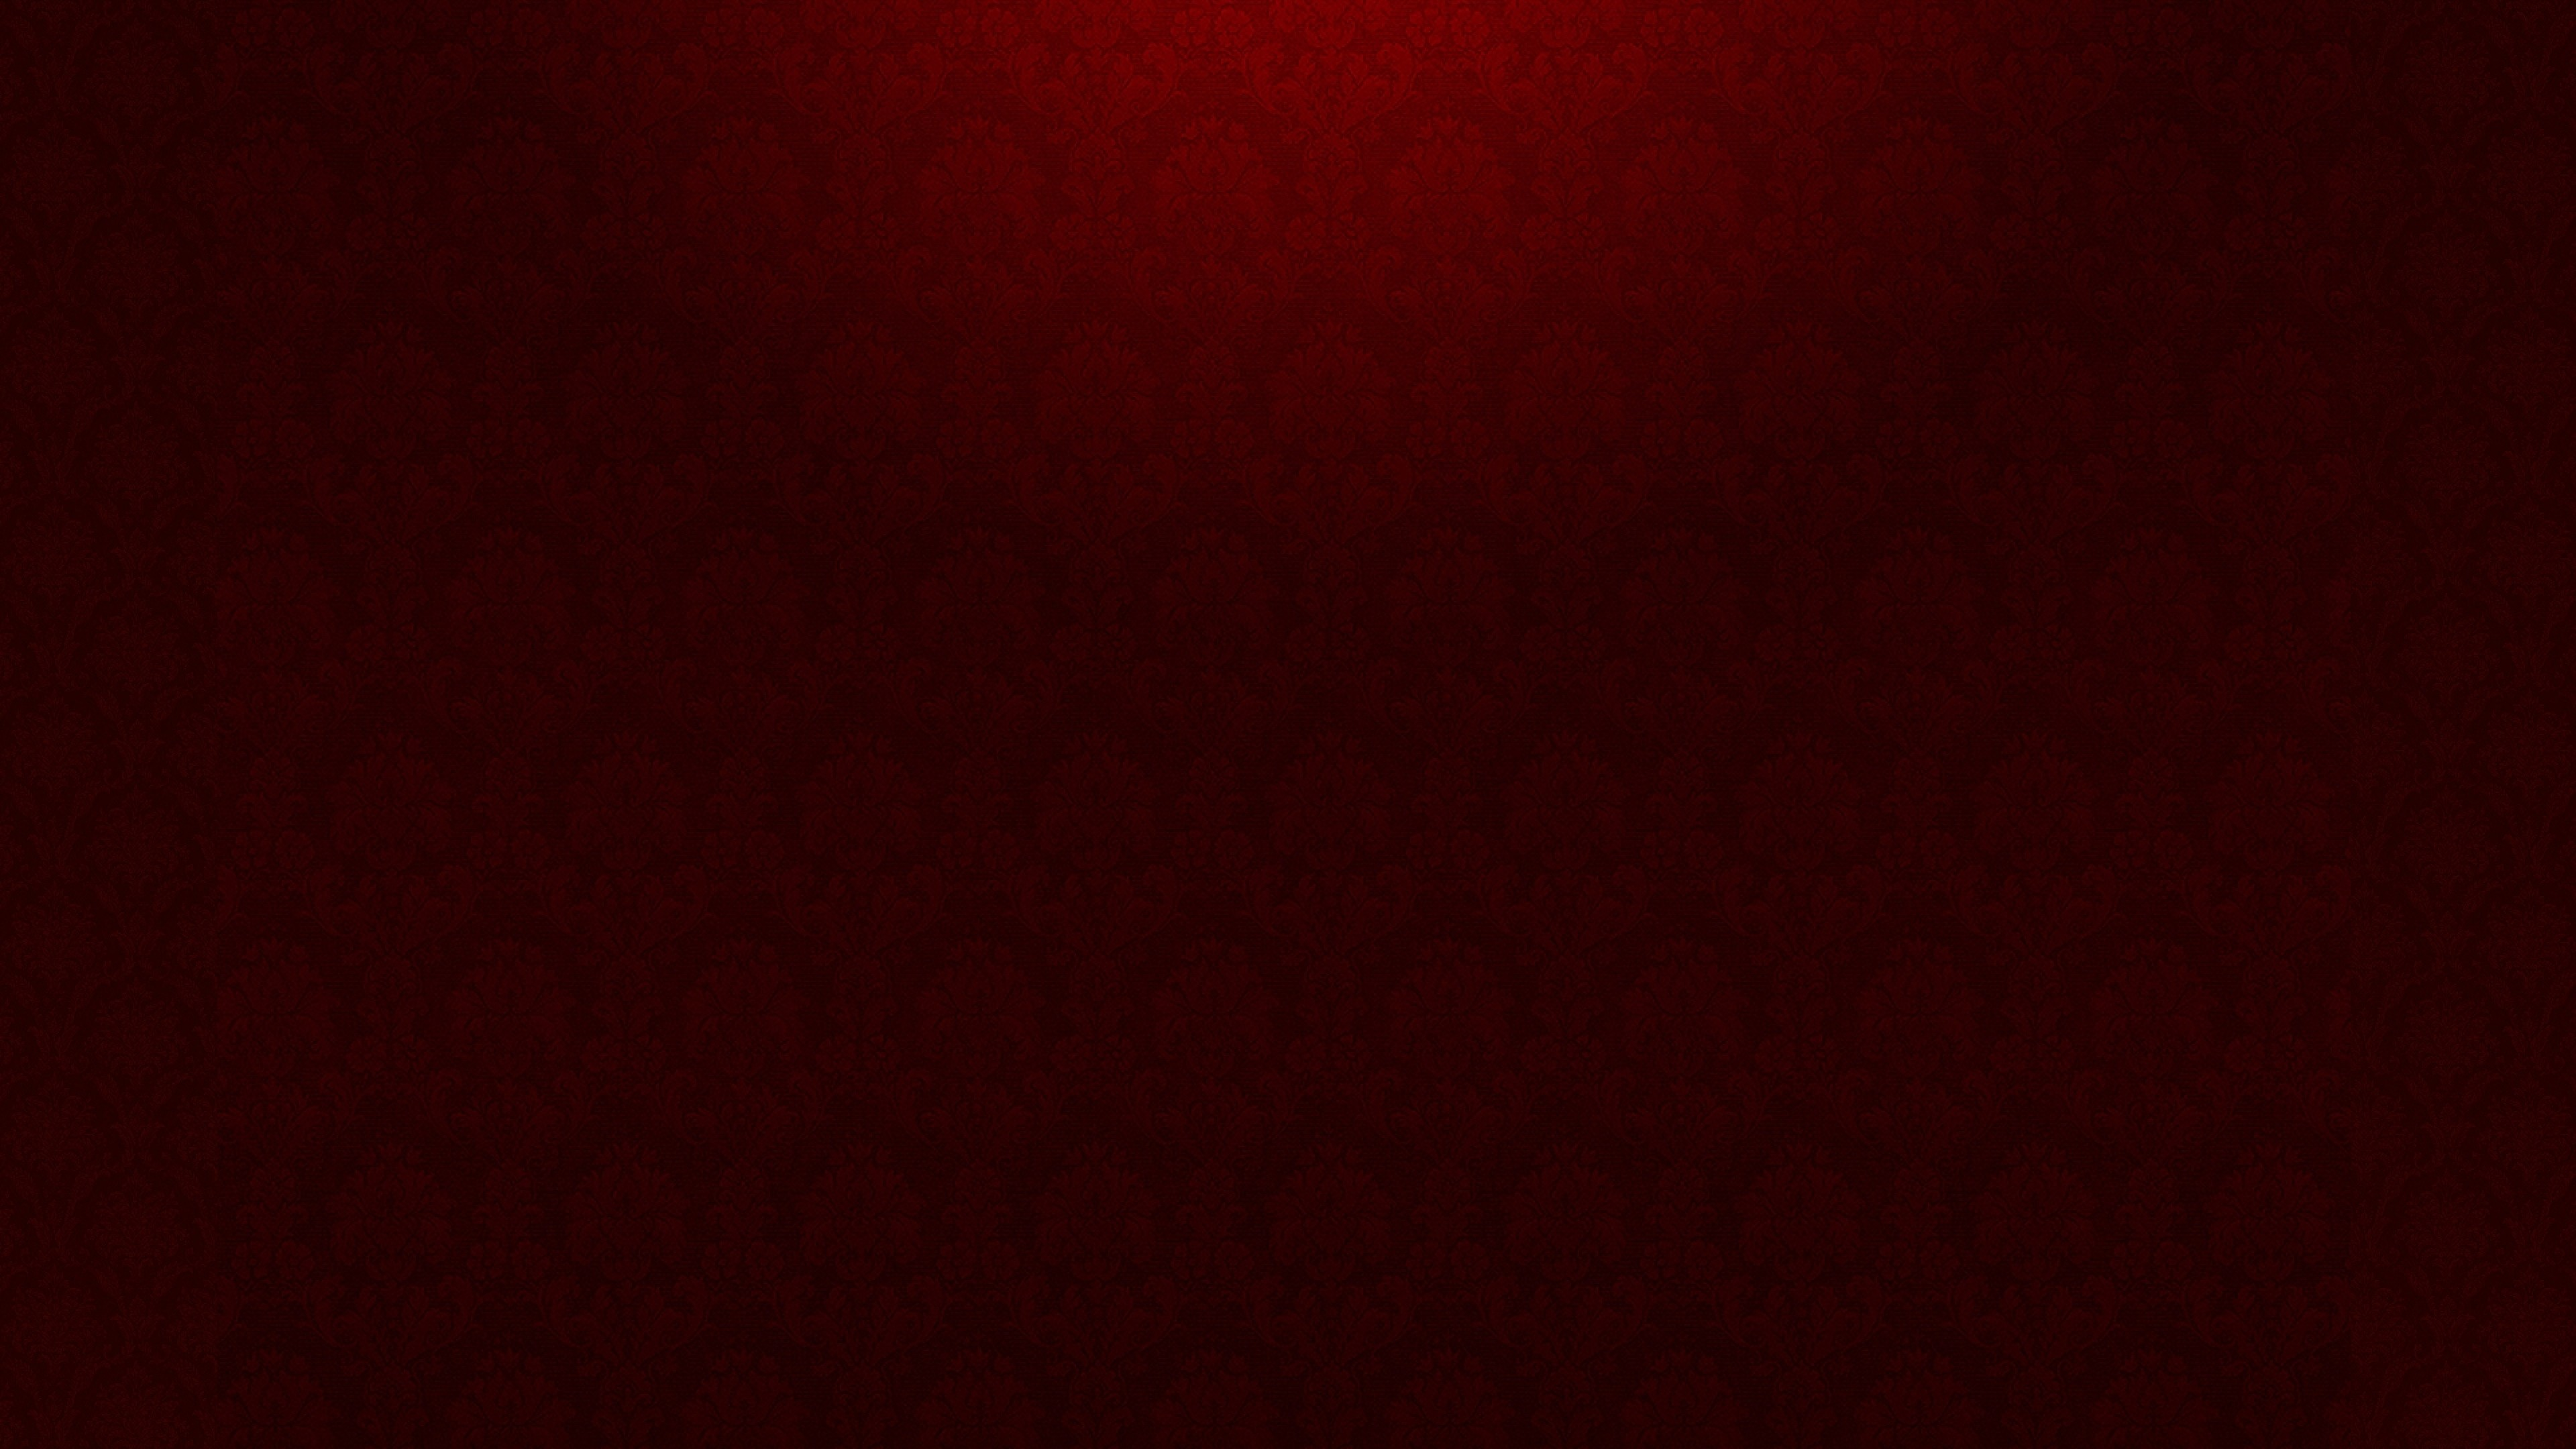 dark maroon wallpaper 75 images getwallpapers com